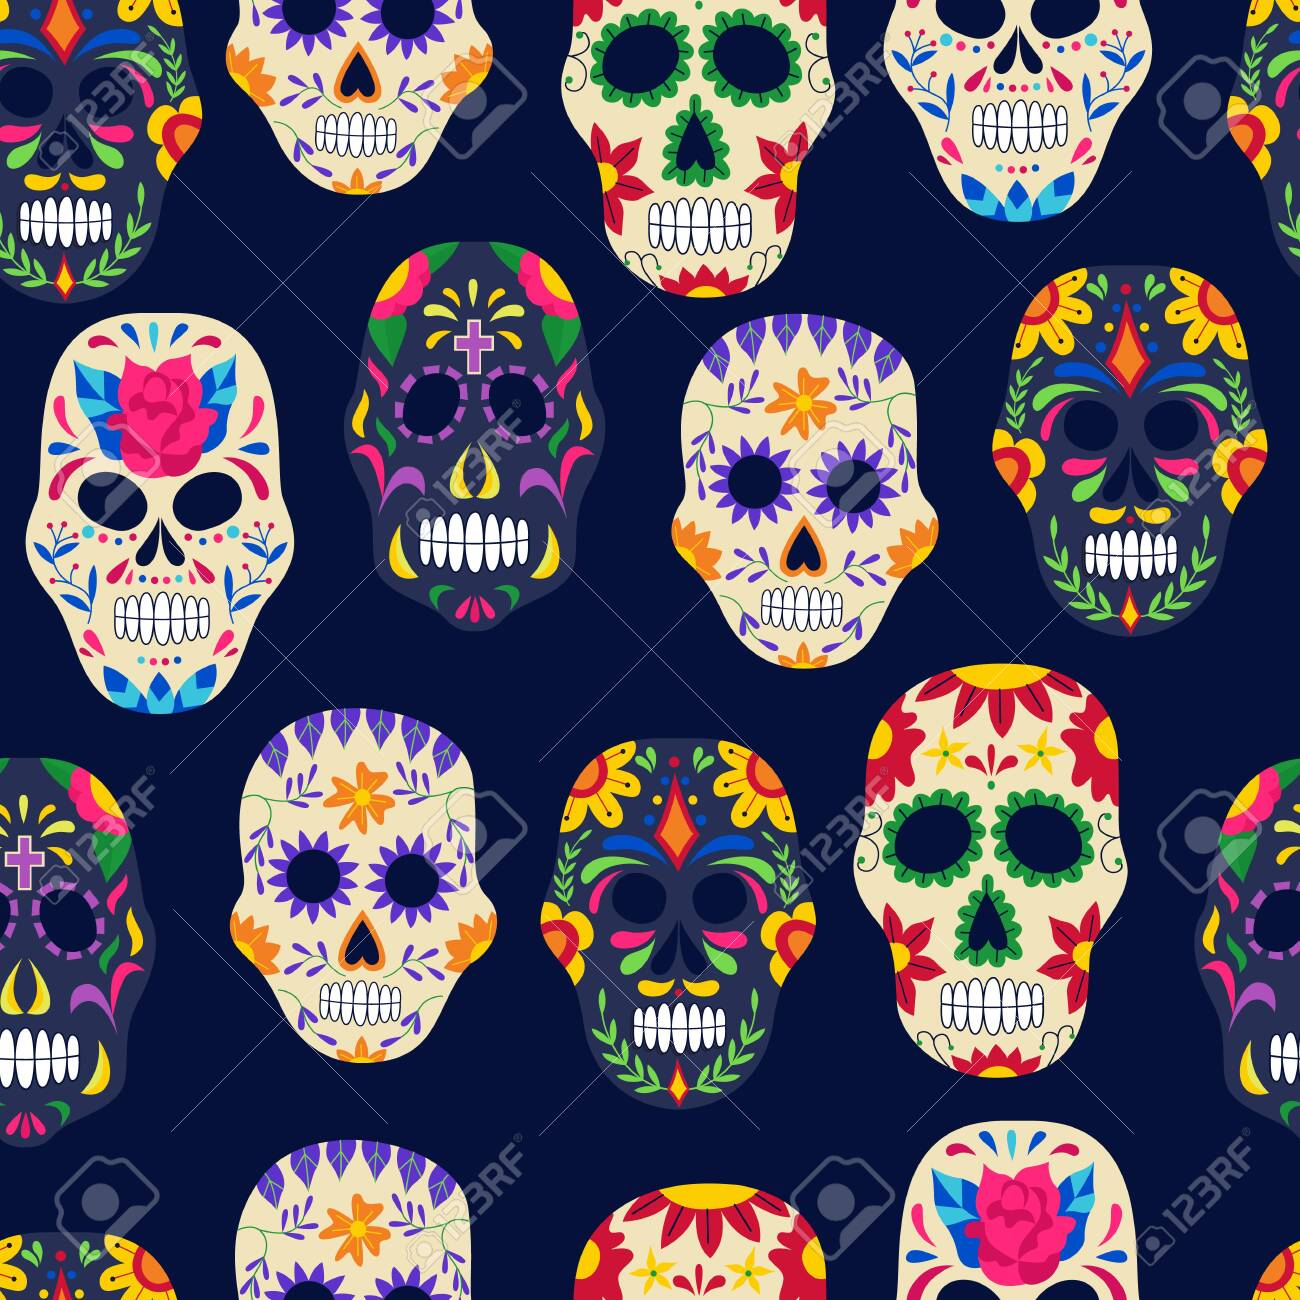 Dia de los muertos painted sugar skull seamless pattern on dark background - Day of the dead backdrop with Mexican holiday symbols. Flat vector illustration. - 133287893